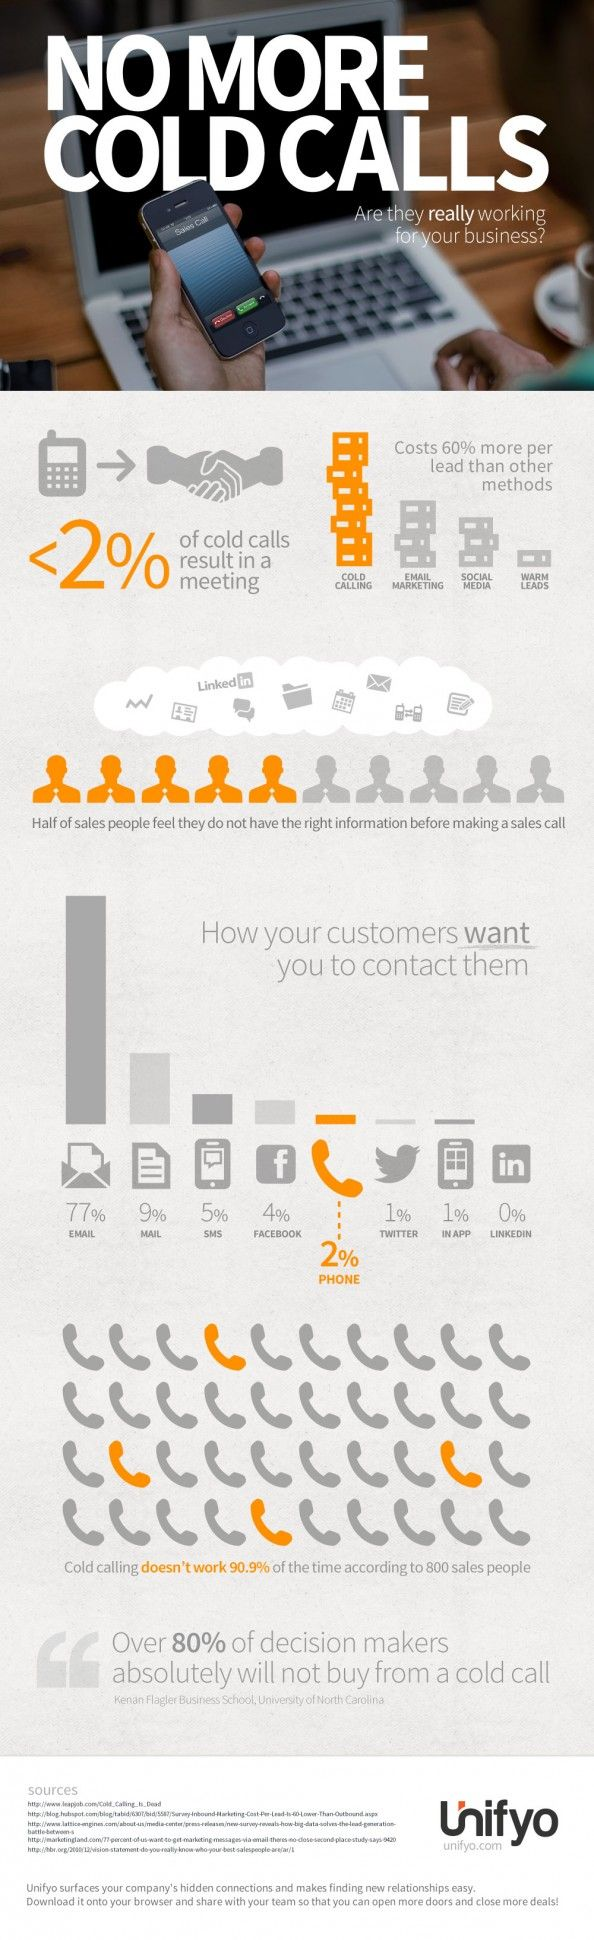 best ideas about cold calling s tips s unifyo believes you are making more cold calls than you should be in this infographic we show you how it is hurting your business try unifyo today